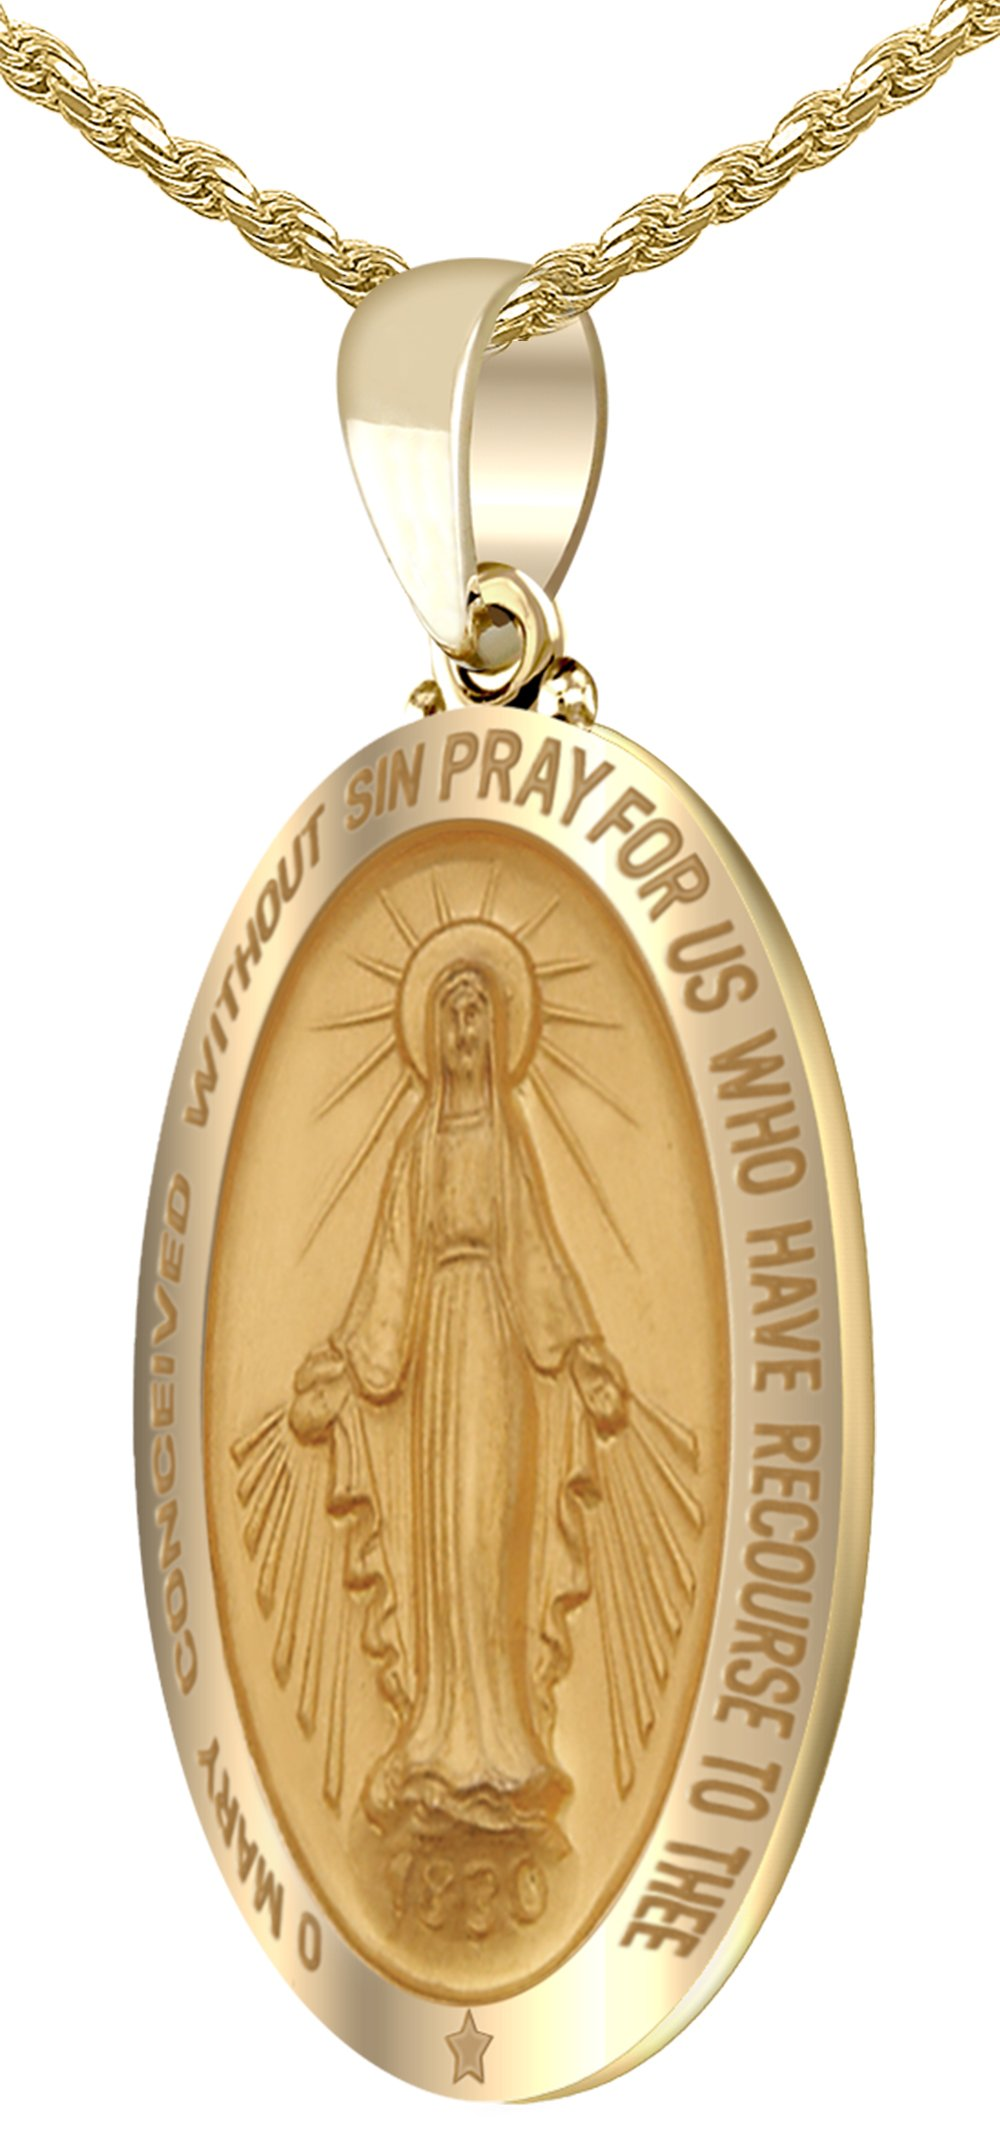 US Jewels And Gems New 14k Yellow Gold 1.25'' Hollow Oval Miraculous Virgin Mary Polished Finish Pendant 1.5mm Box Necklace, 24'' by US Jewels And Gems